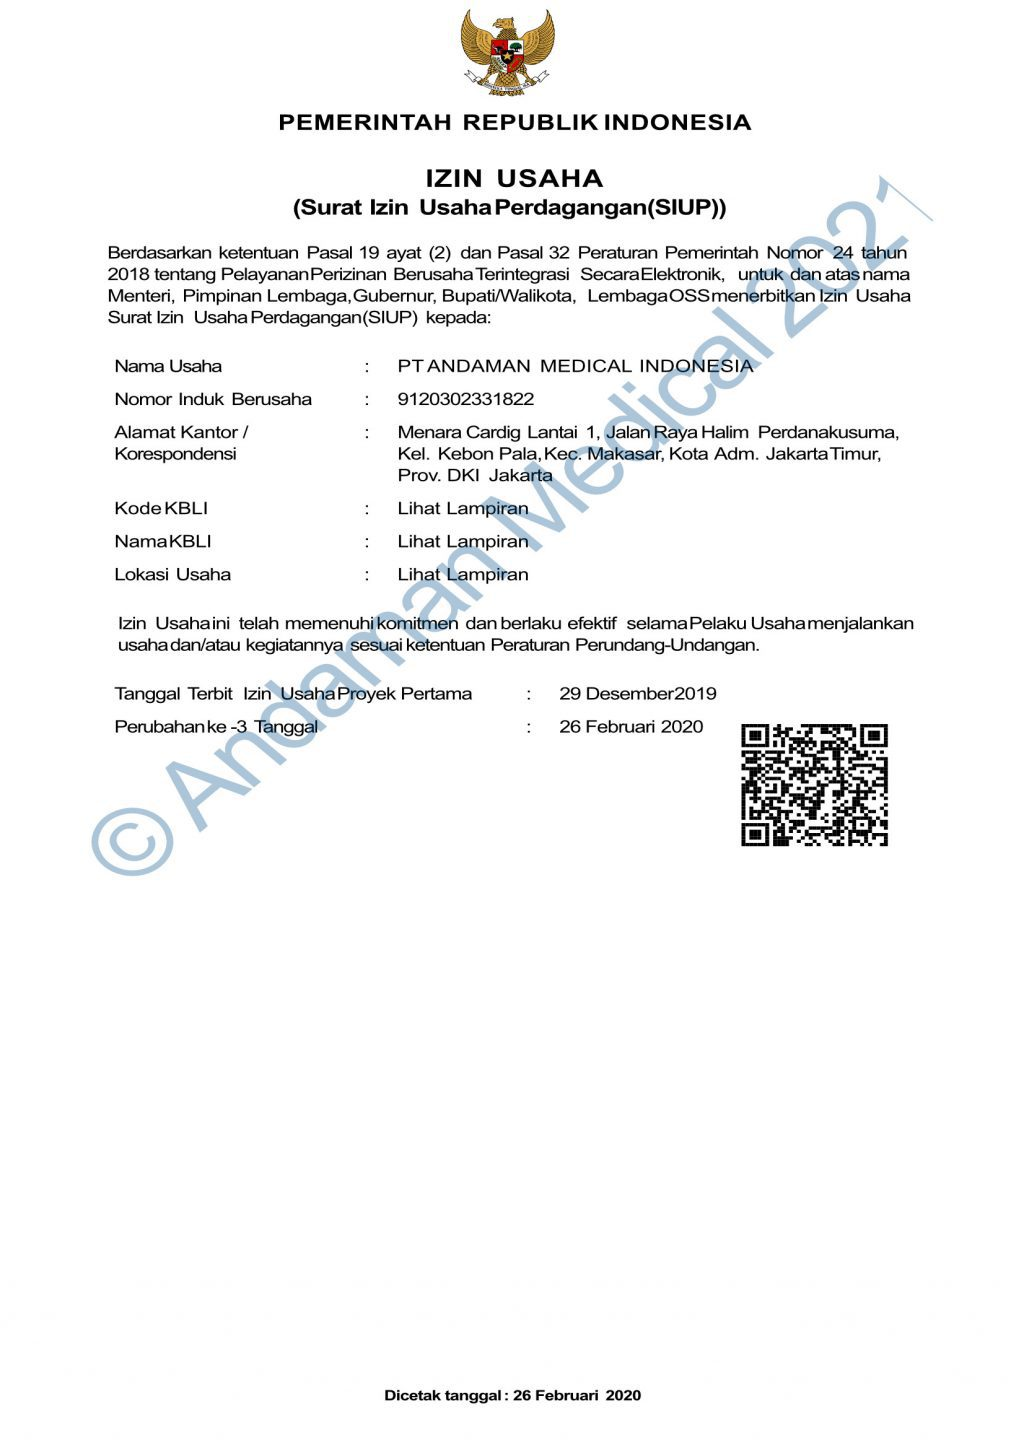 Andaman Medical Indonesia SIUP Business License